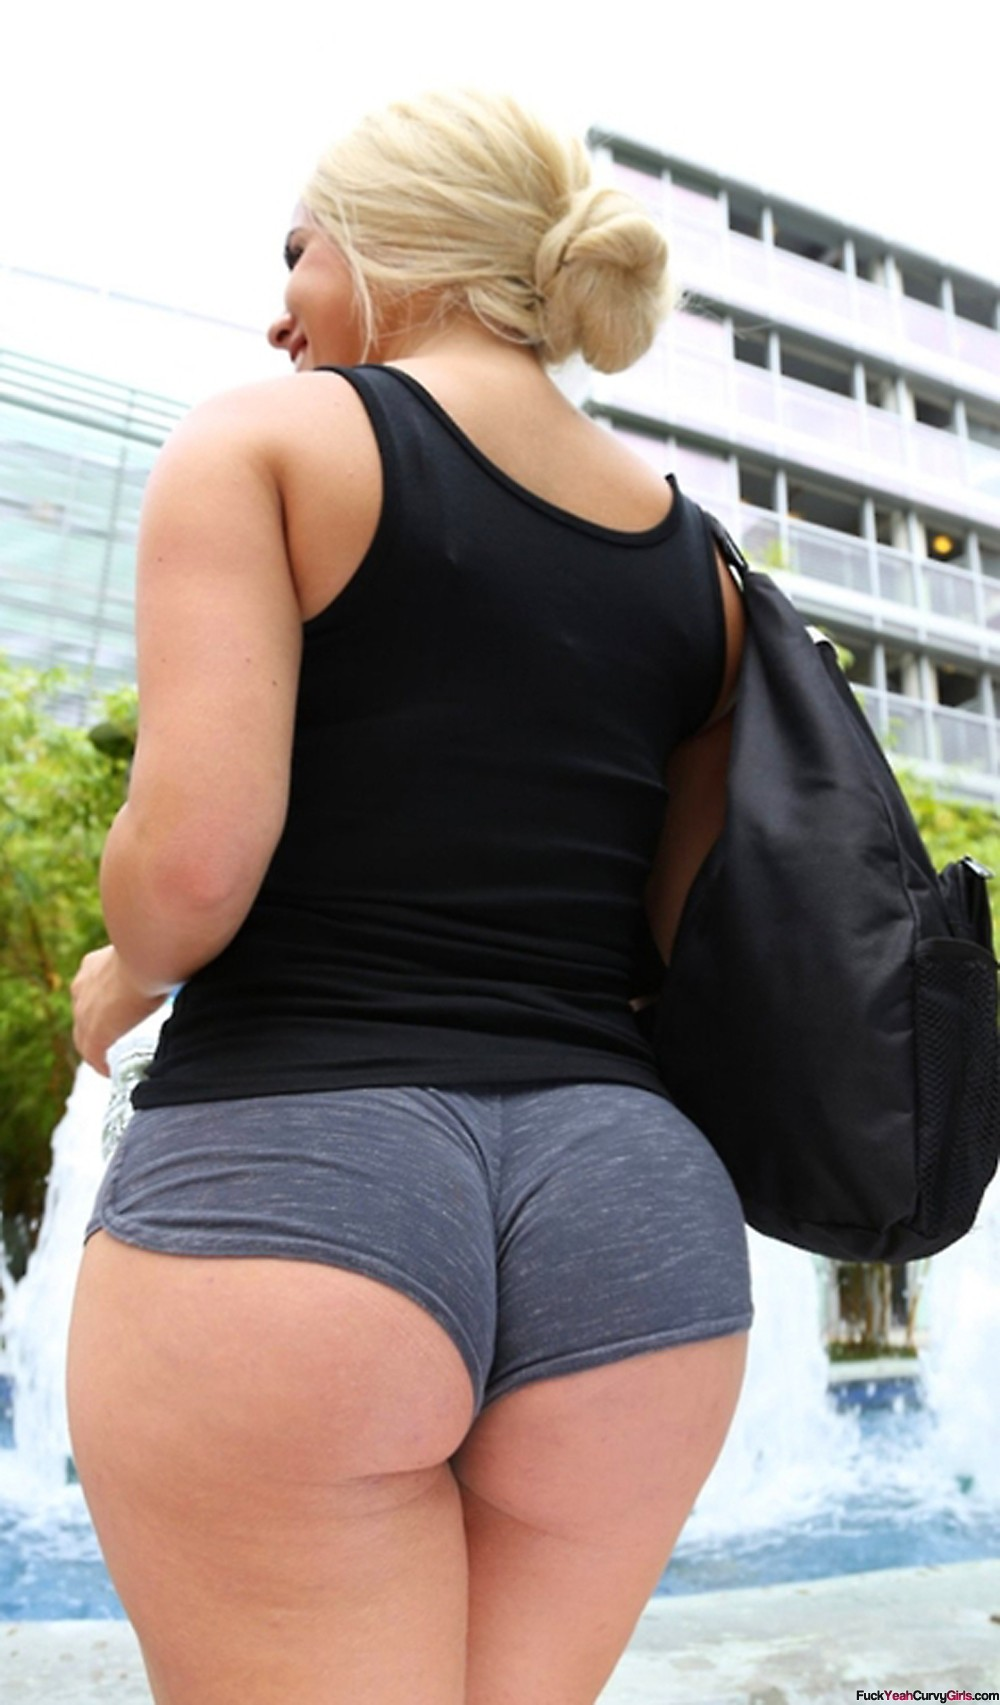 sexy girls in booty shorts gallery